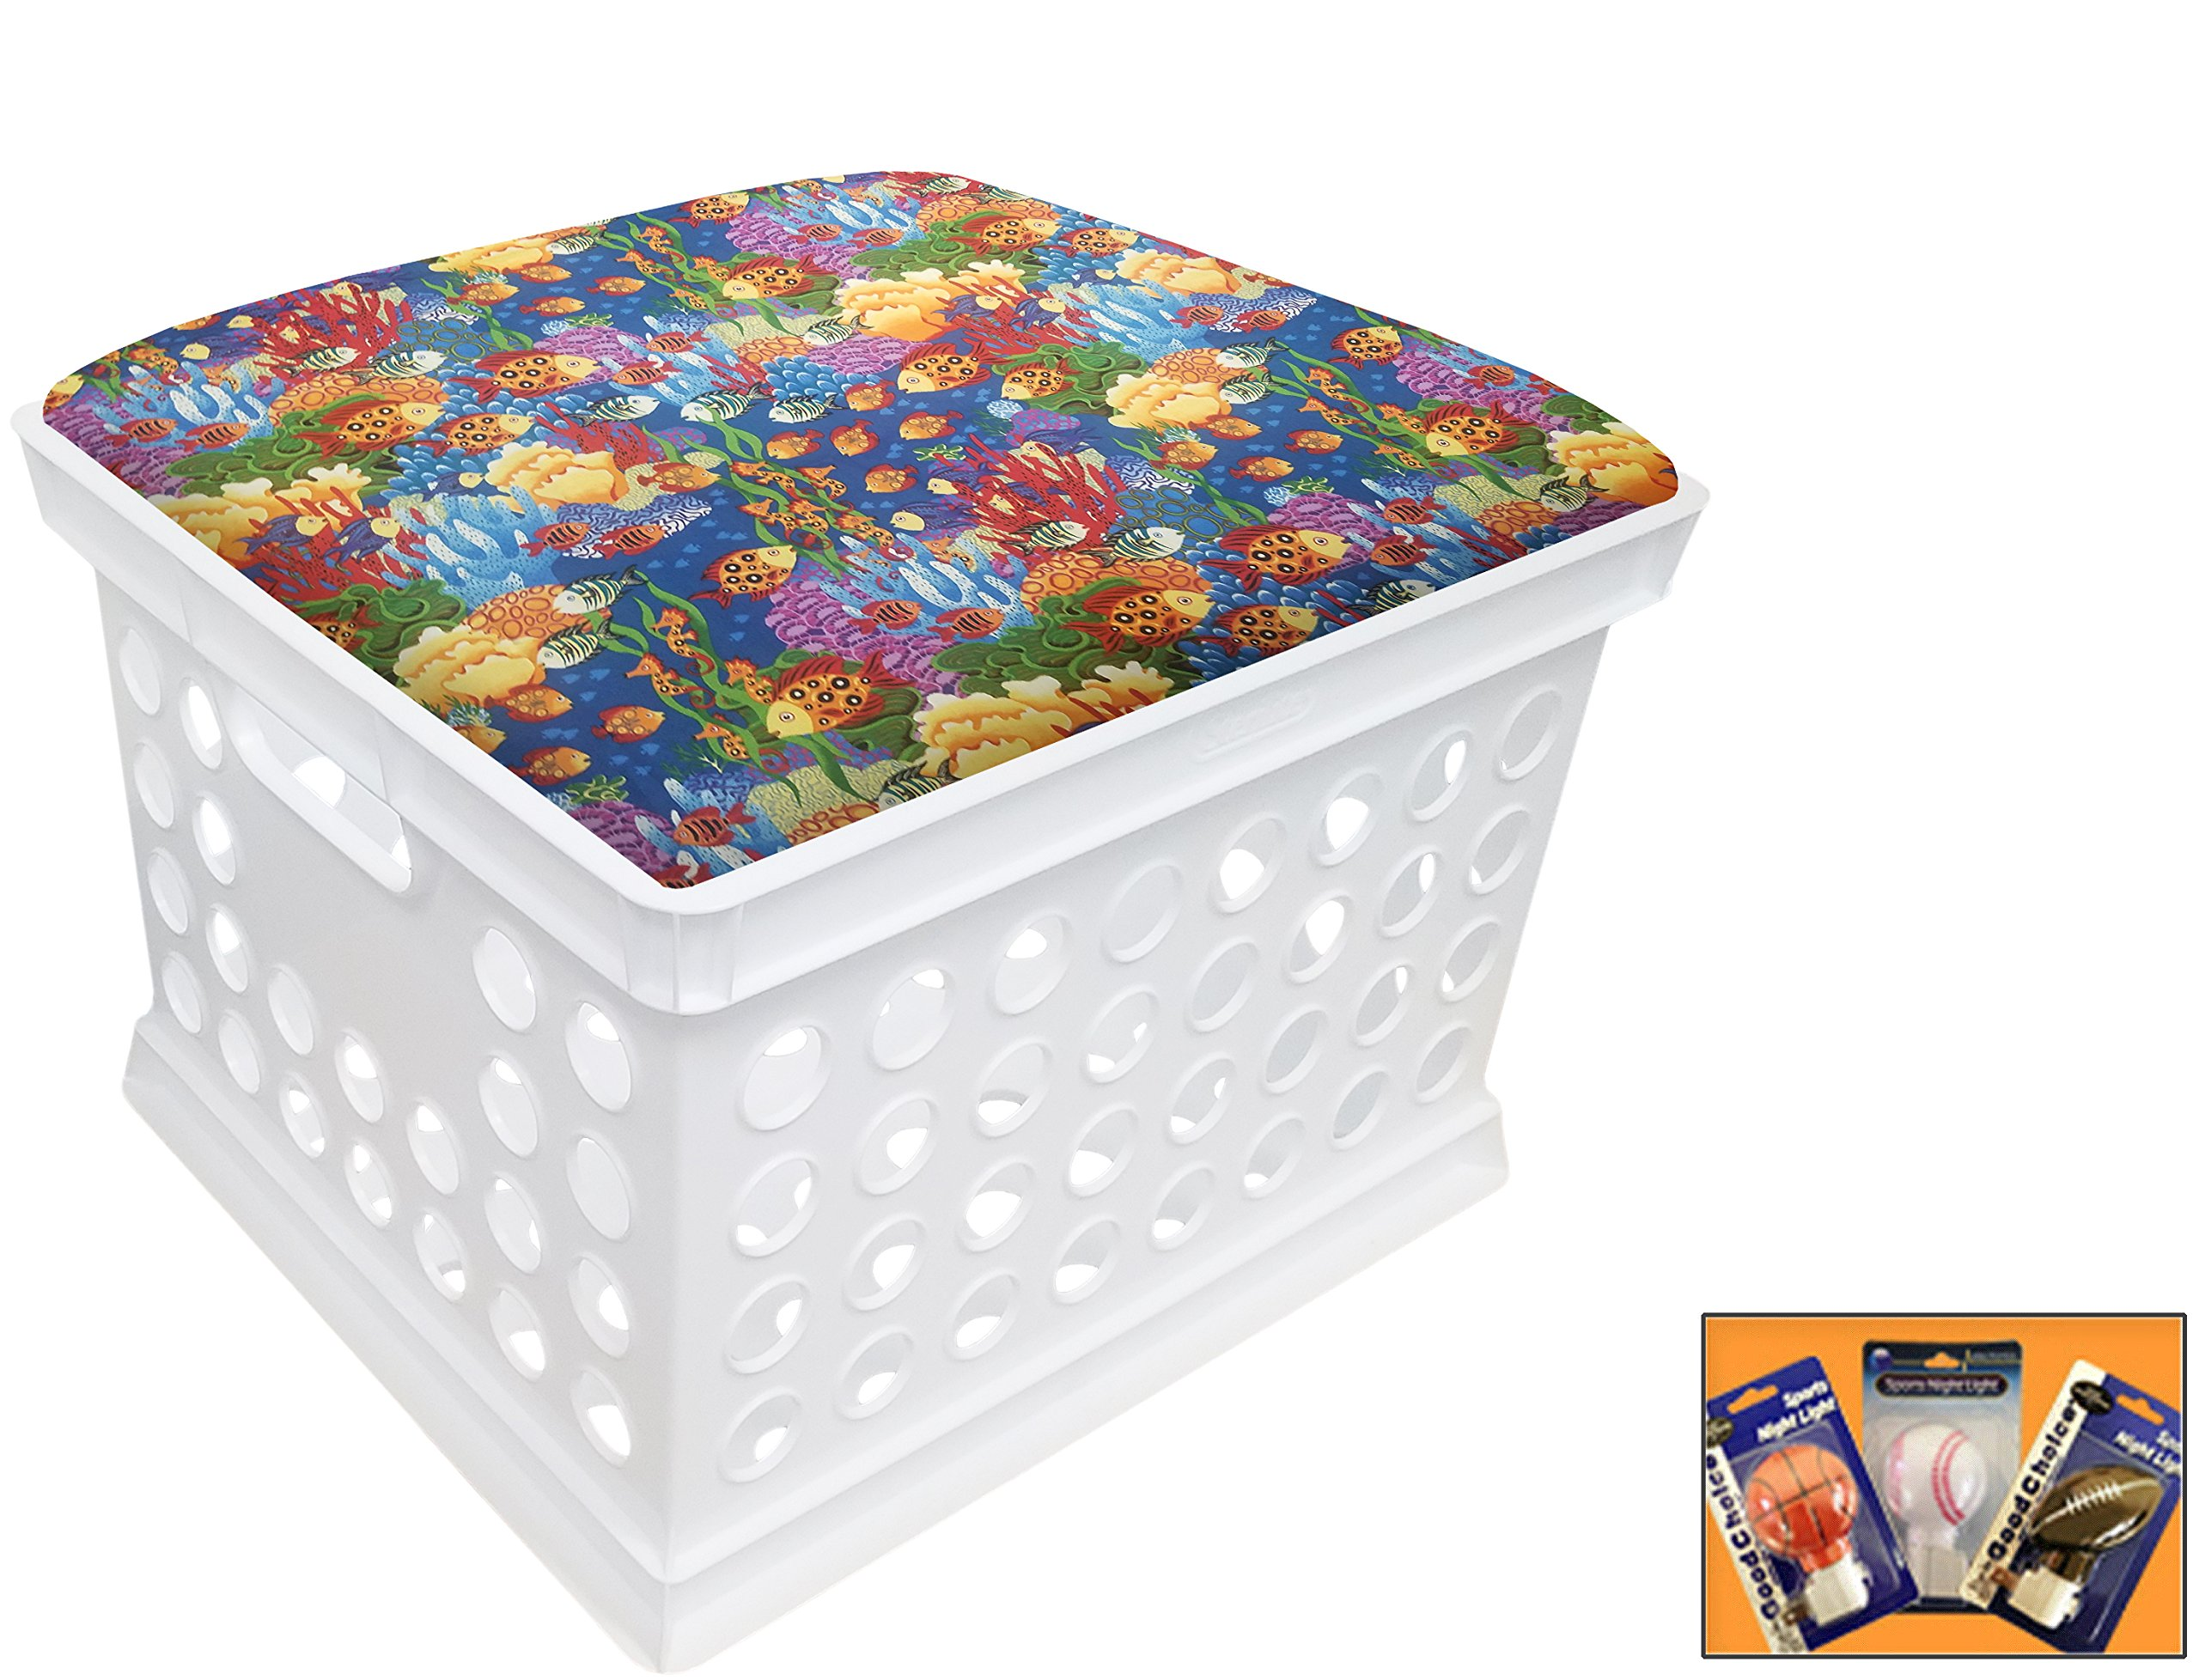 White Utility Crate Storage Container Ottoman Bench Stool for Office/Home/School/Preschools with Your Choice of Seat Cushion Theme! (Colorful Fish)